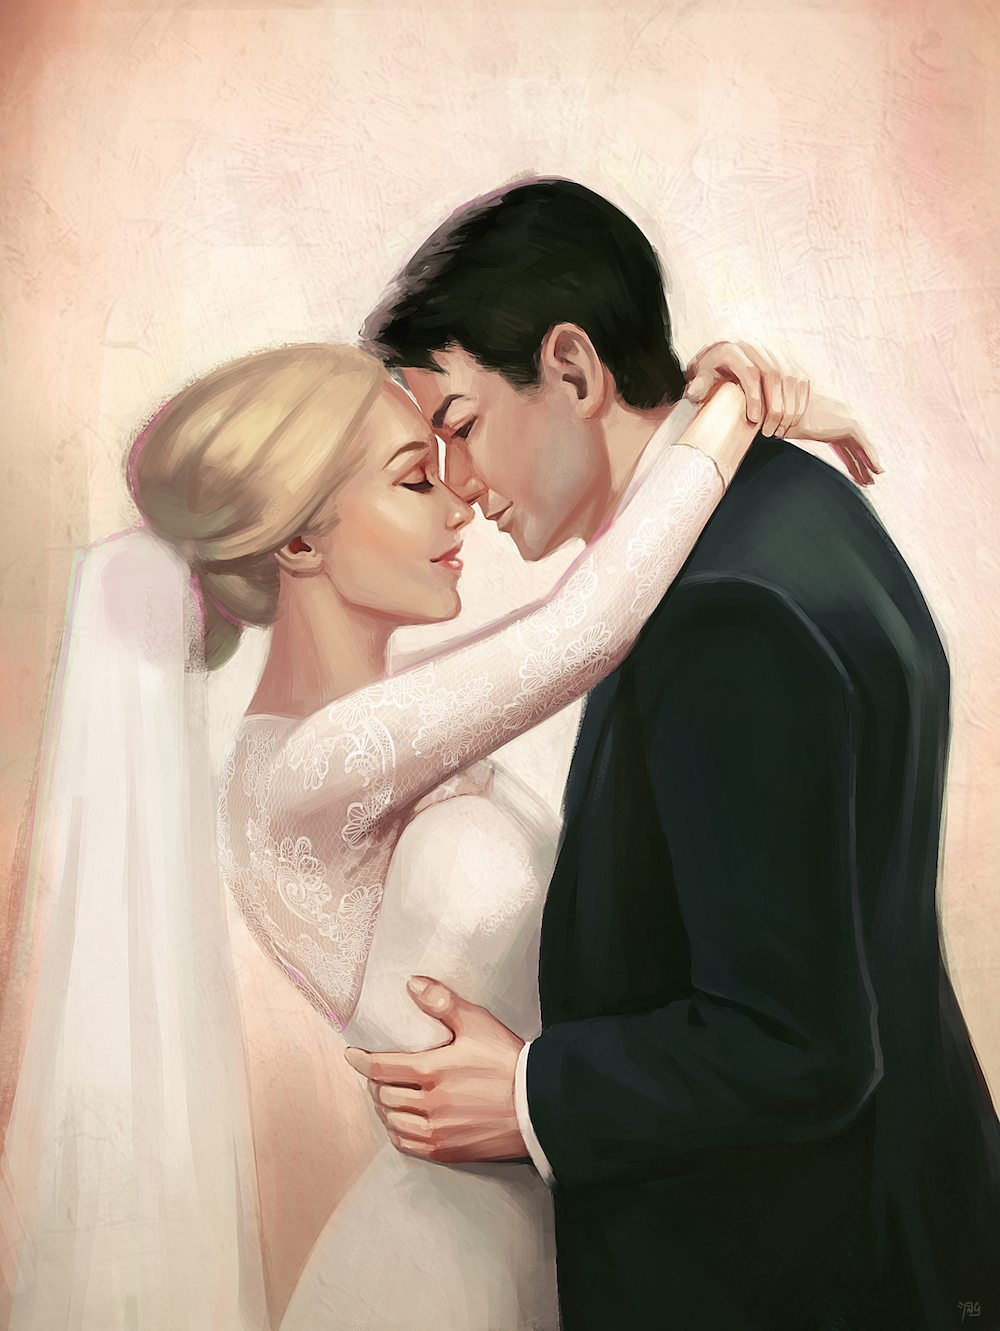 Lucy and Miles as Bride and Groom by Angeline Roussel via ArtCorgi